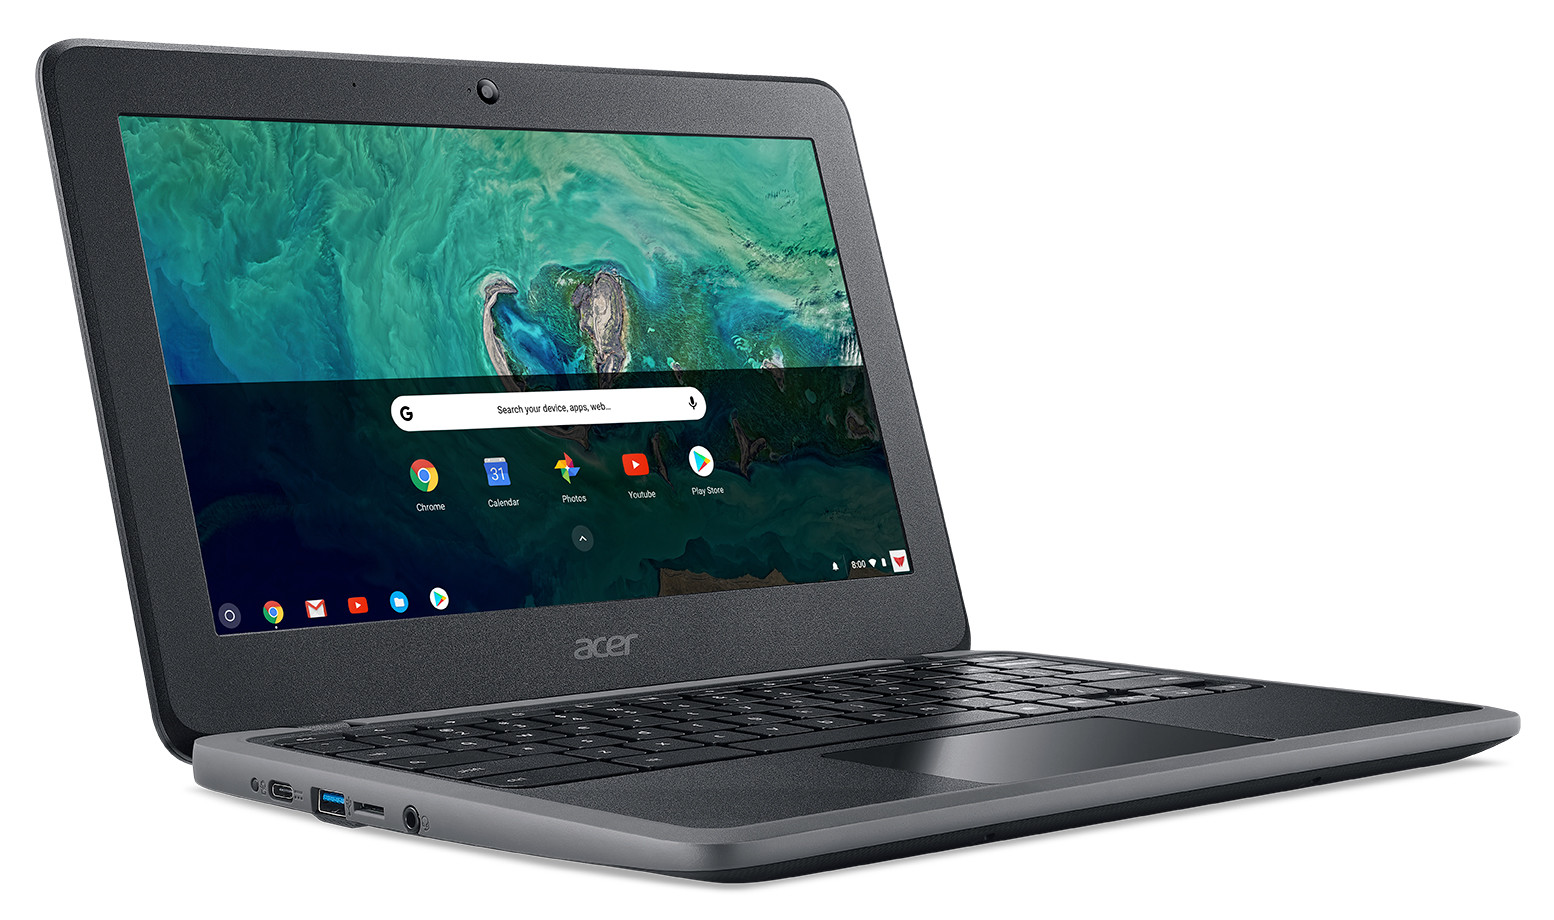 Acer launches new Chromebook 11 series